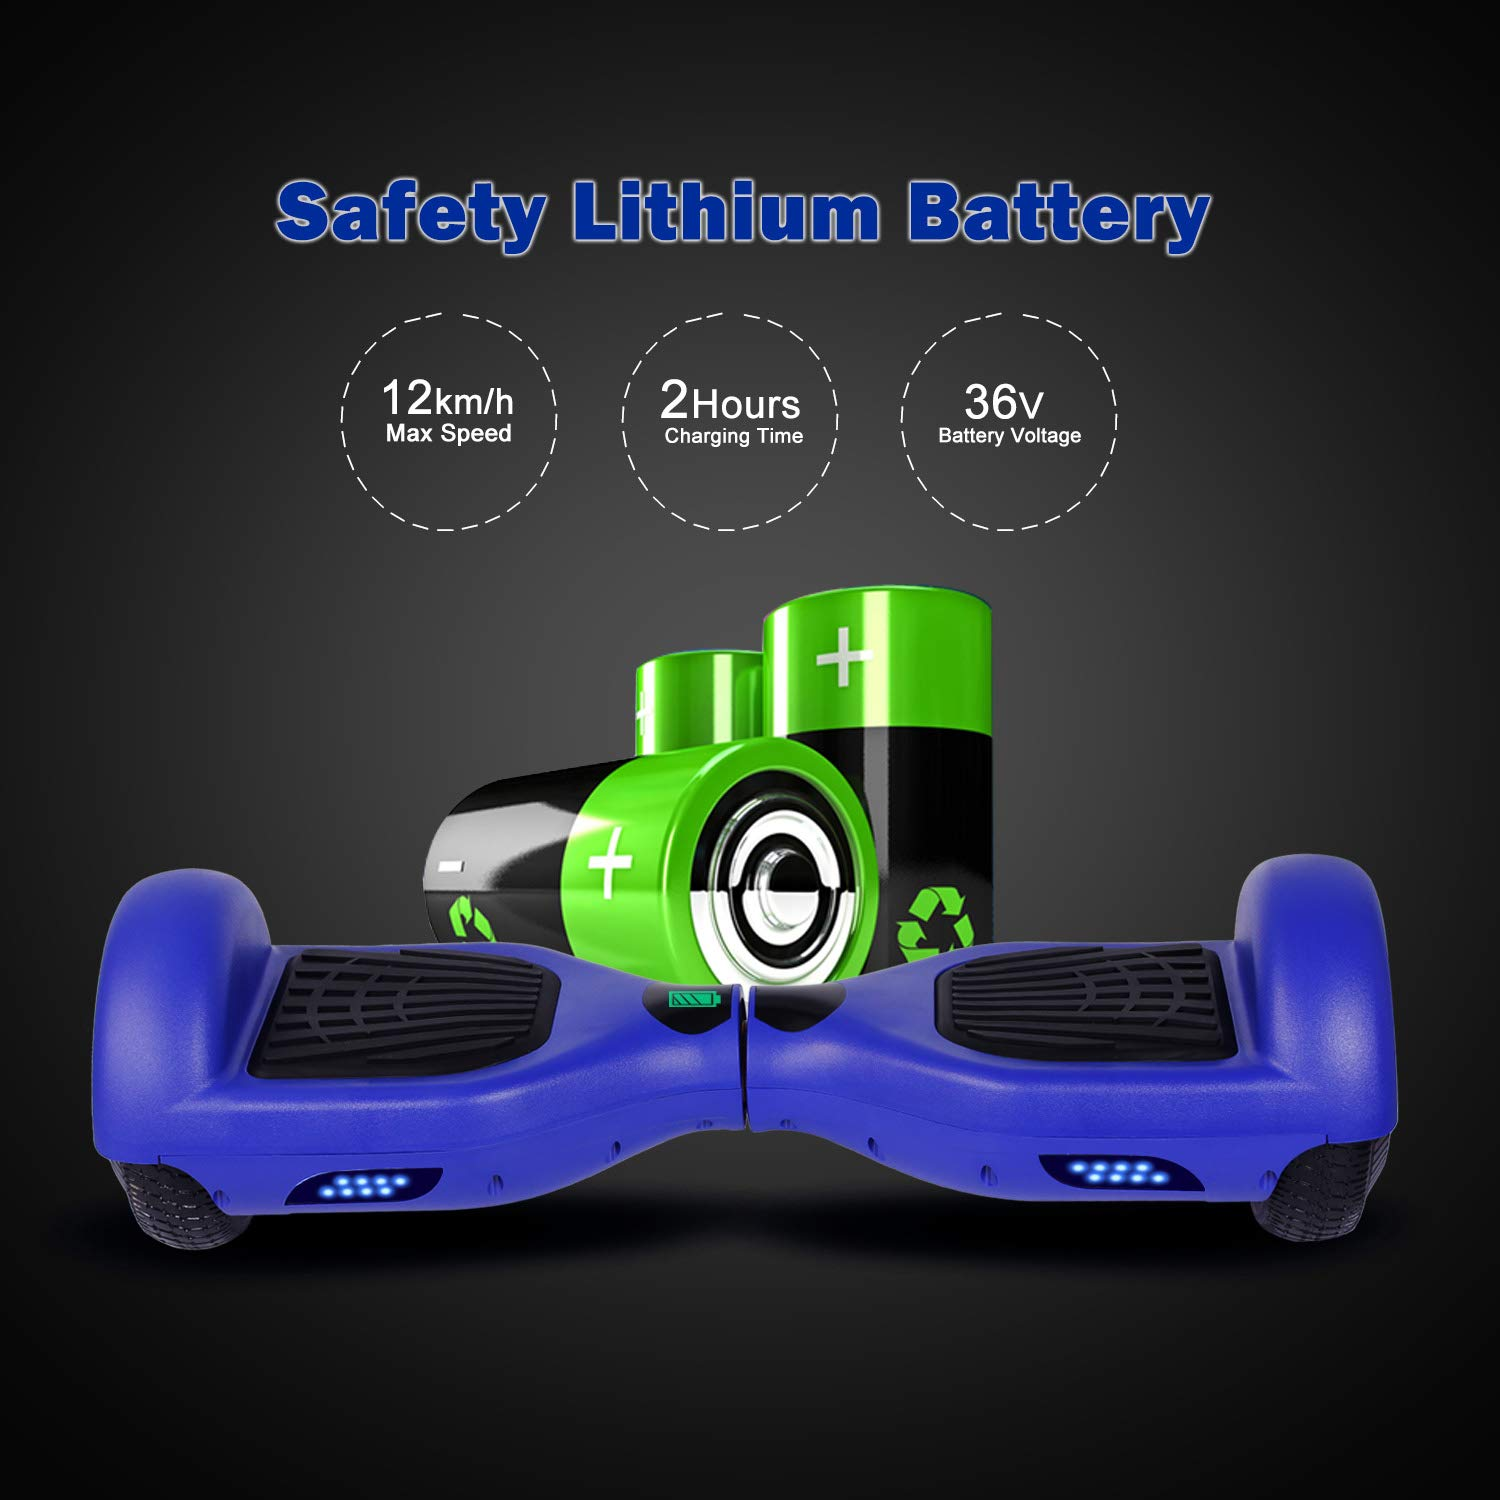 SISIGAD Hoverboard, Self Balancing Hoverboard, 6.5'' Two-Wheel Self Balancing Scooter, Smart Hover Board for Kids Gift, Adult Electric Scooter, with LED Lights and Free Carrying Bag UL2272 Certified by SISIGAD (Image #3)